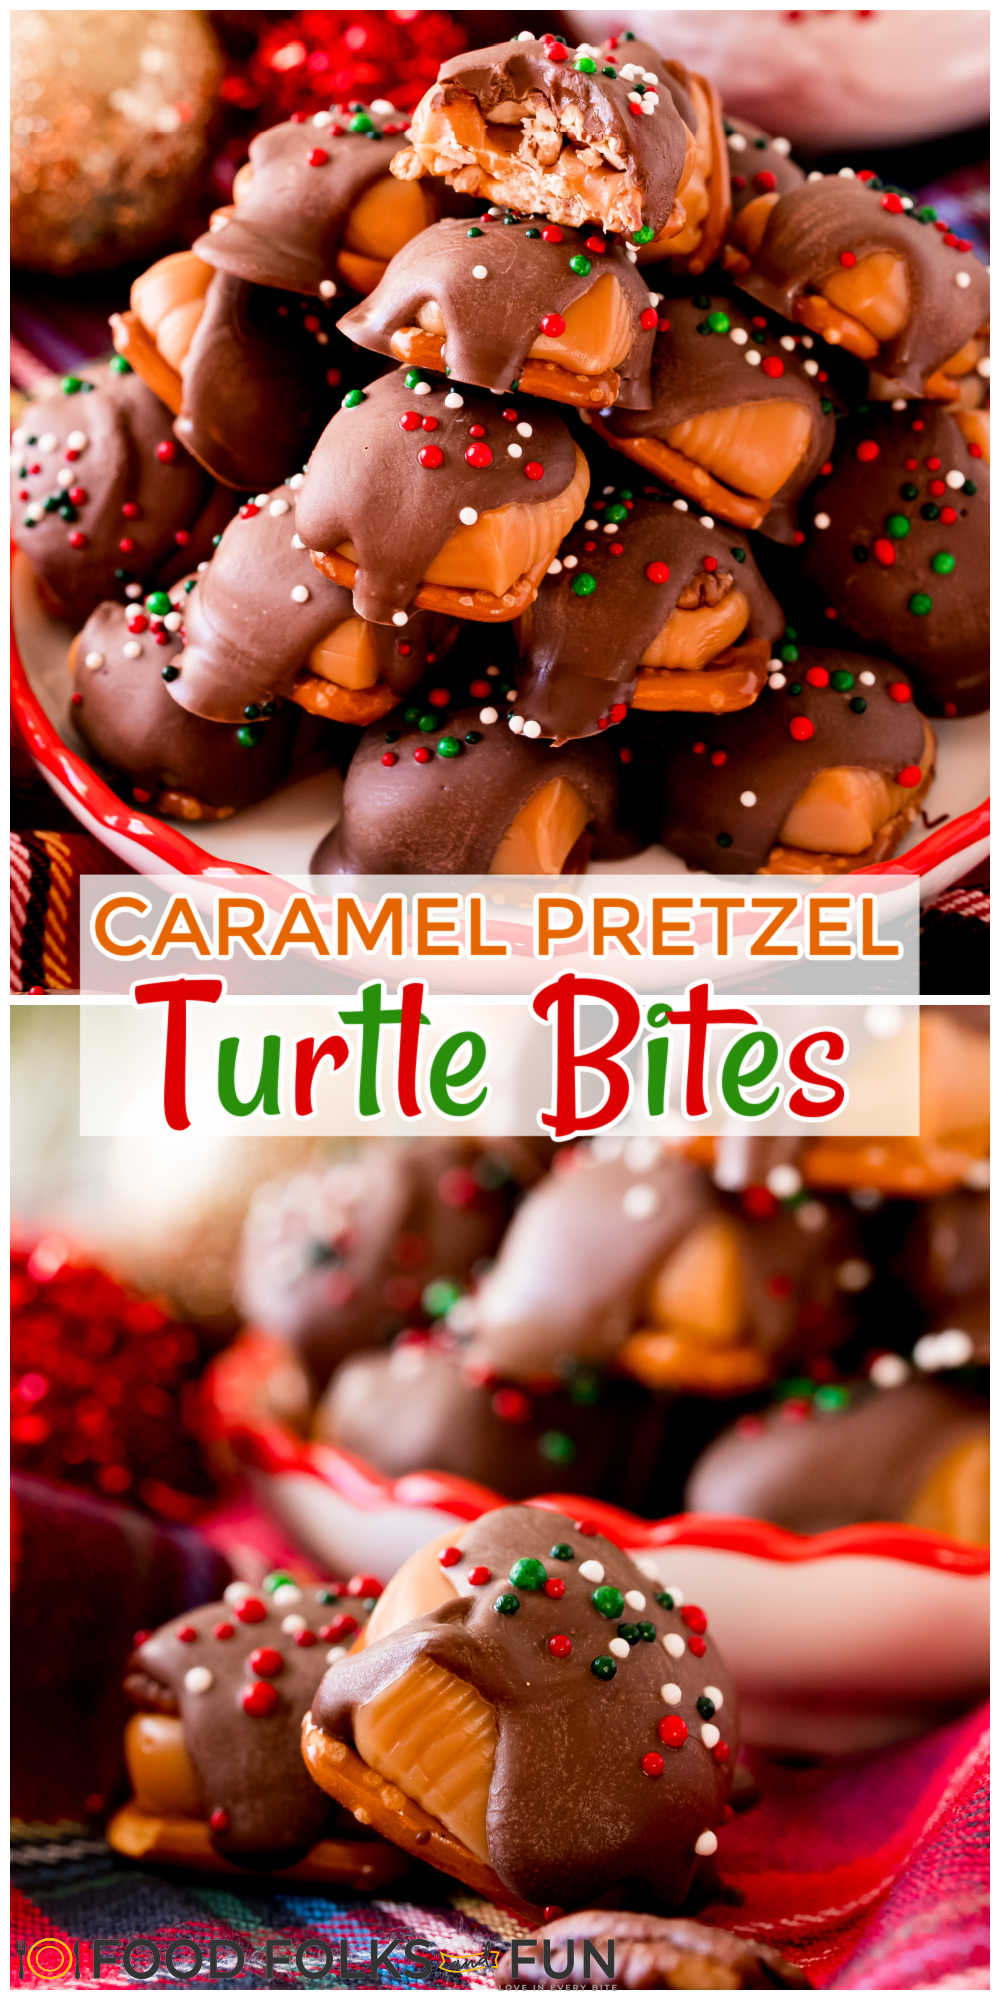 A fun twist on turtle candies, these easy Caramel Pretzel Turtles are made with pretzels, chewy caramels, pecans, and chocolate! Top them with sprinkles to make them extra festive! via @foodfolksandfun